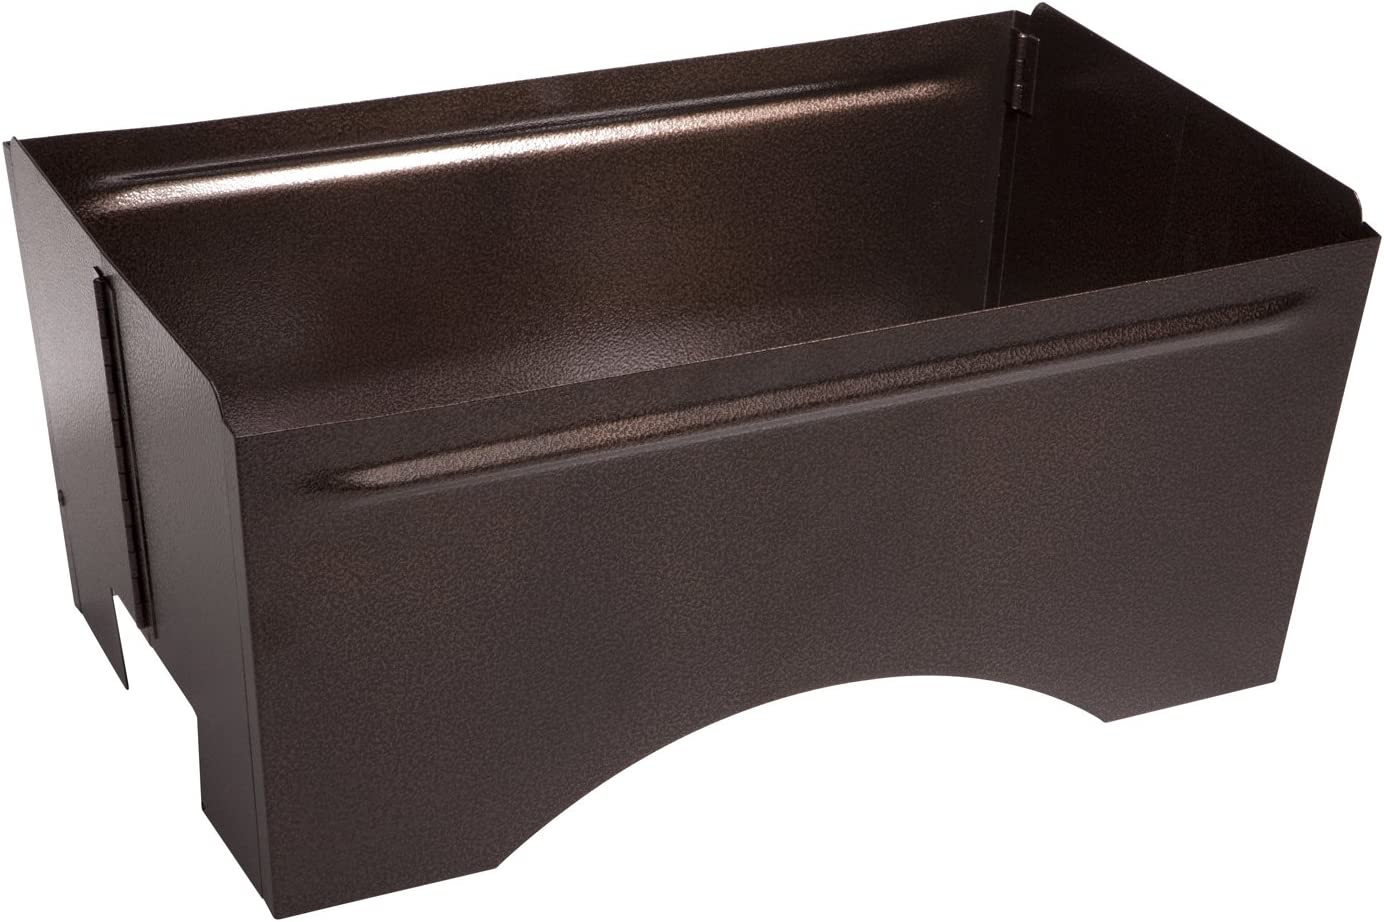 Sterno Chafing Dish Frame, Copper Vein